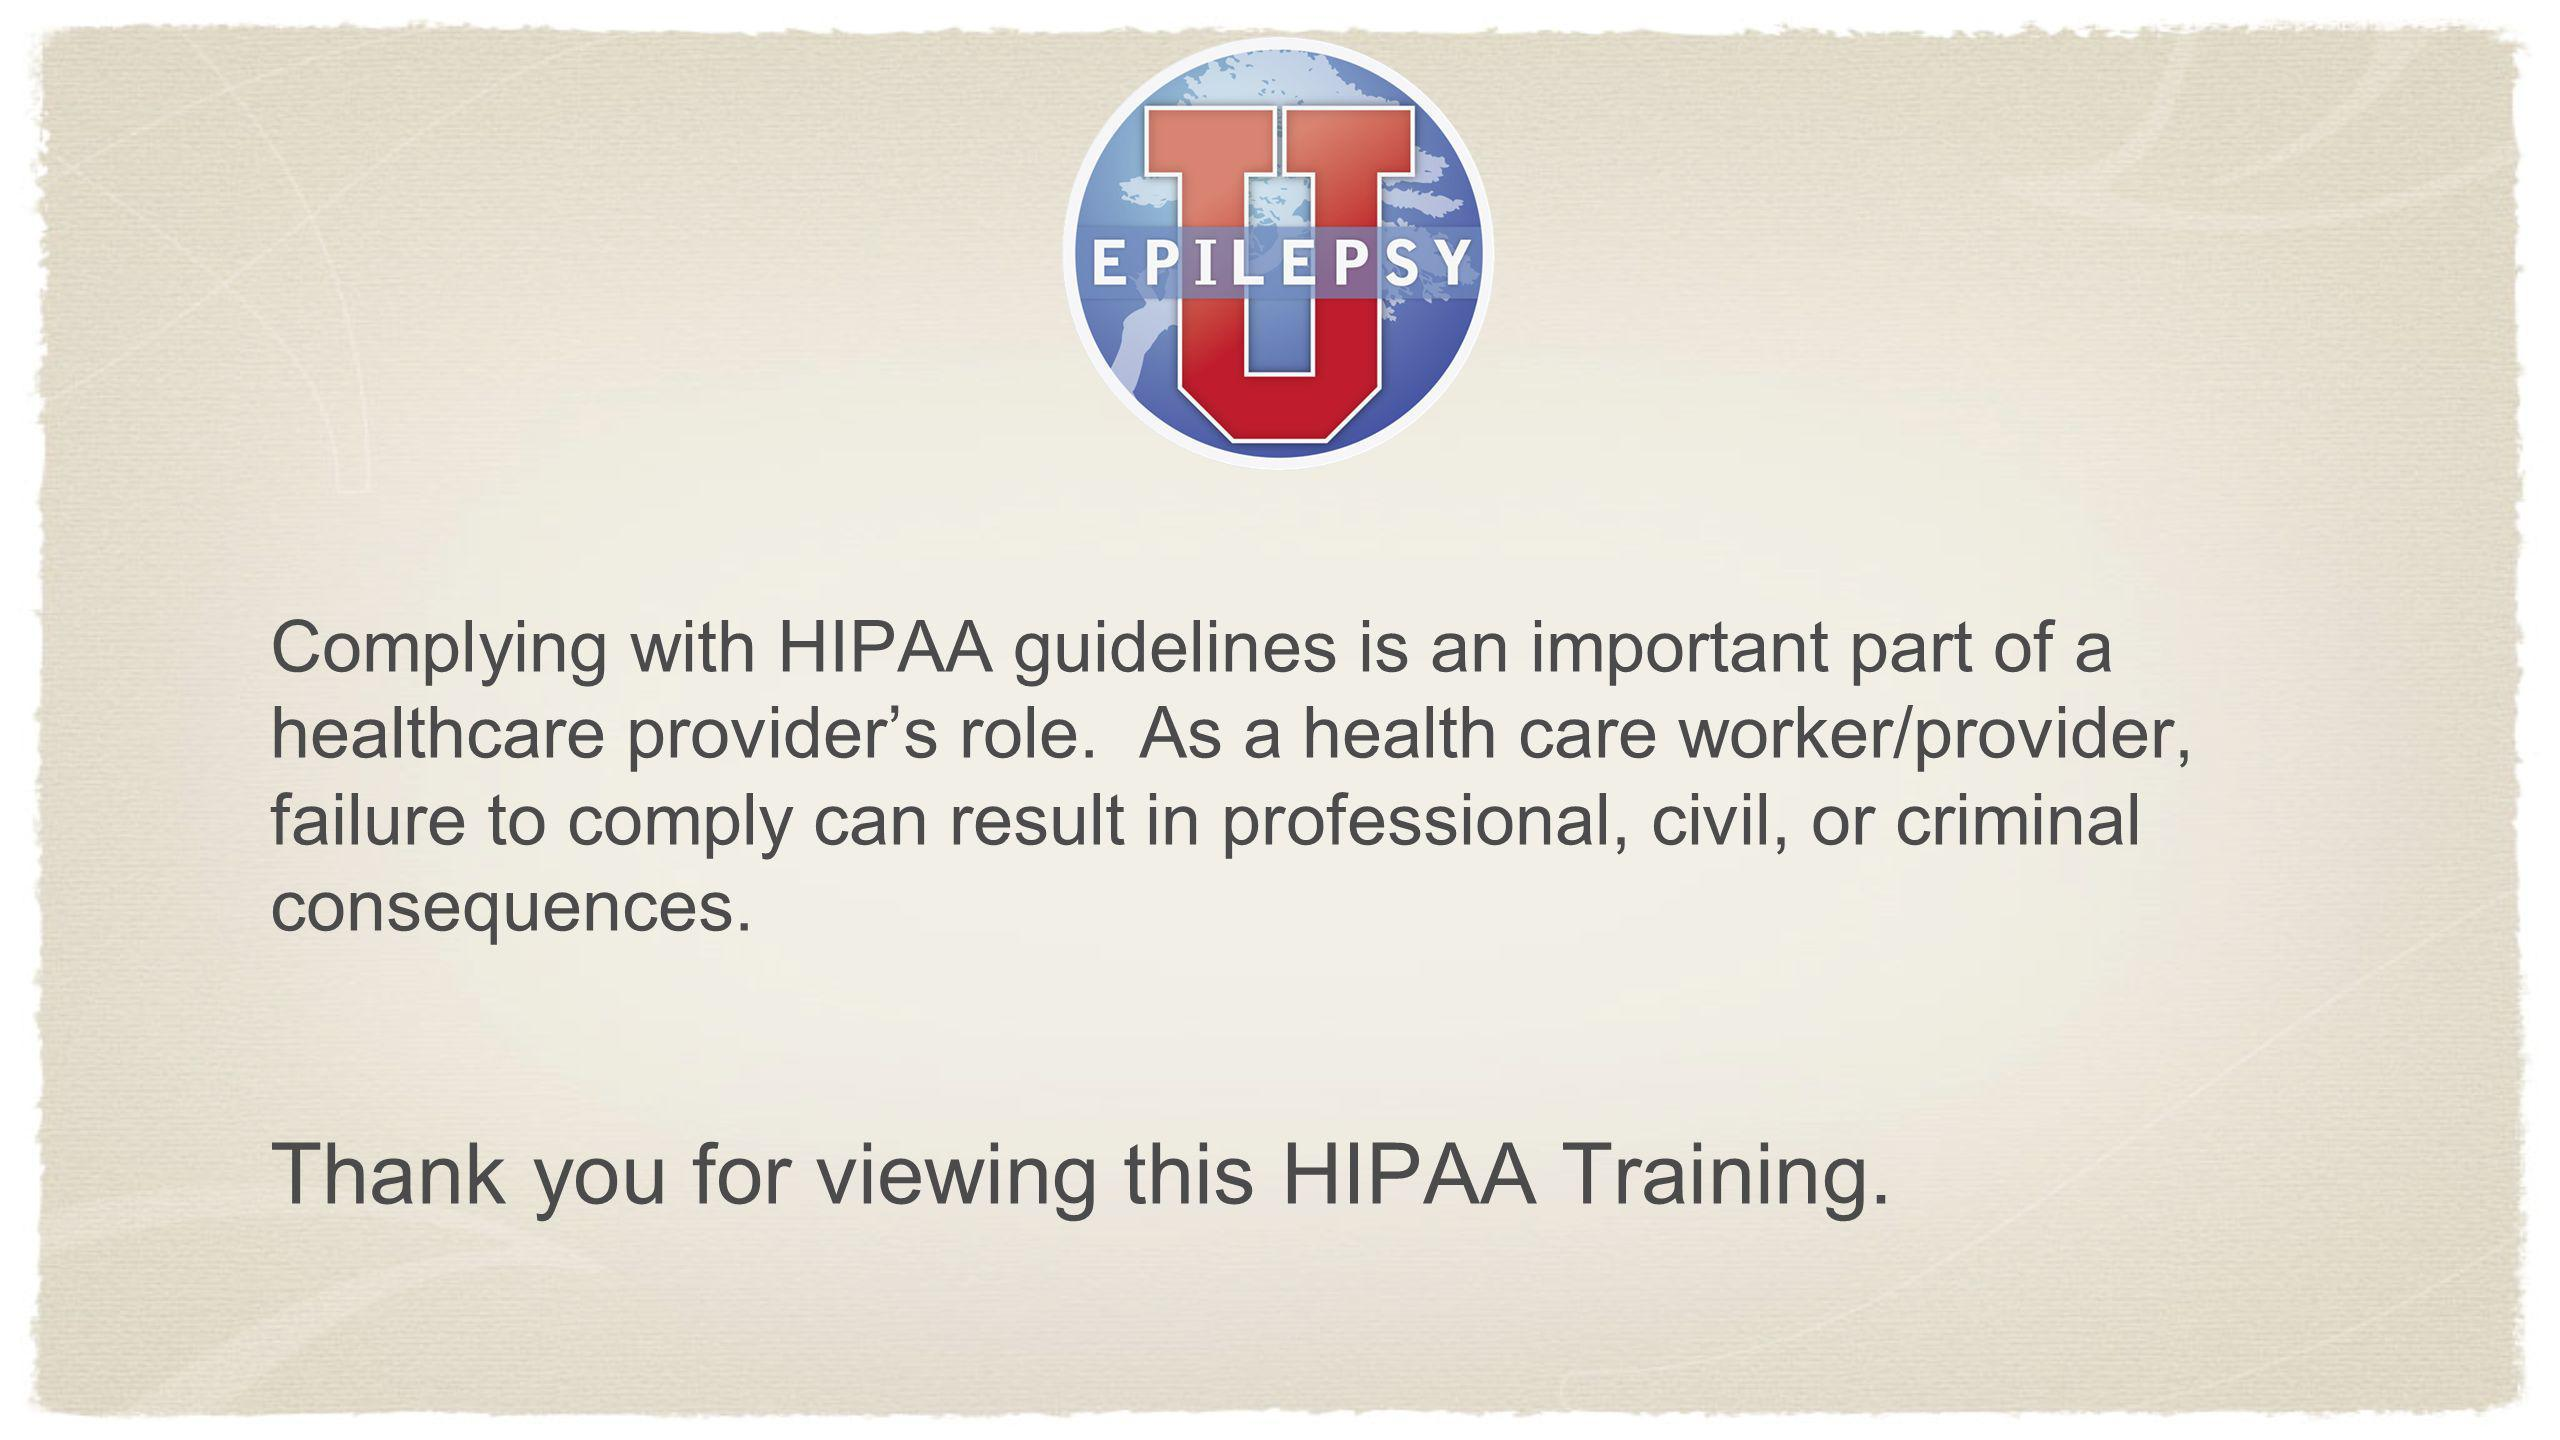 Complying with HIPAA guidelines is an important part of a healthcare providers role. As a health care worker/provider, failure to comply can result in